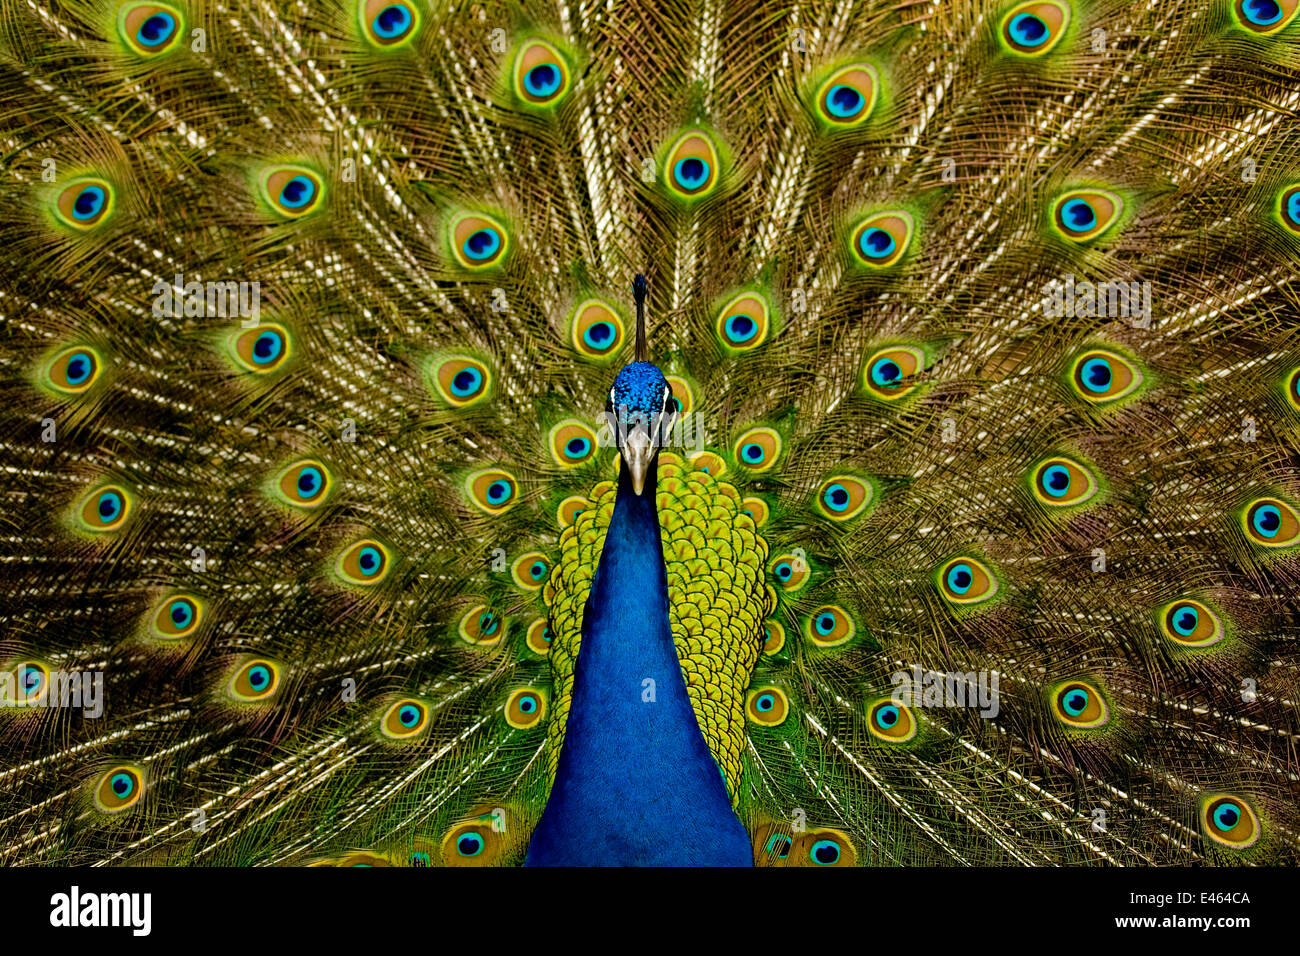 Male peacock (Pavo cristatus) displaying his ocellated tail feathers. The peacock's tail, cumbersome and expensive - Stock Image